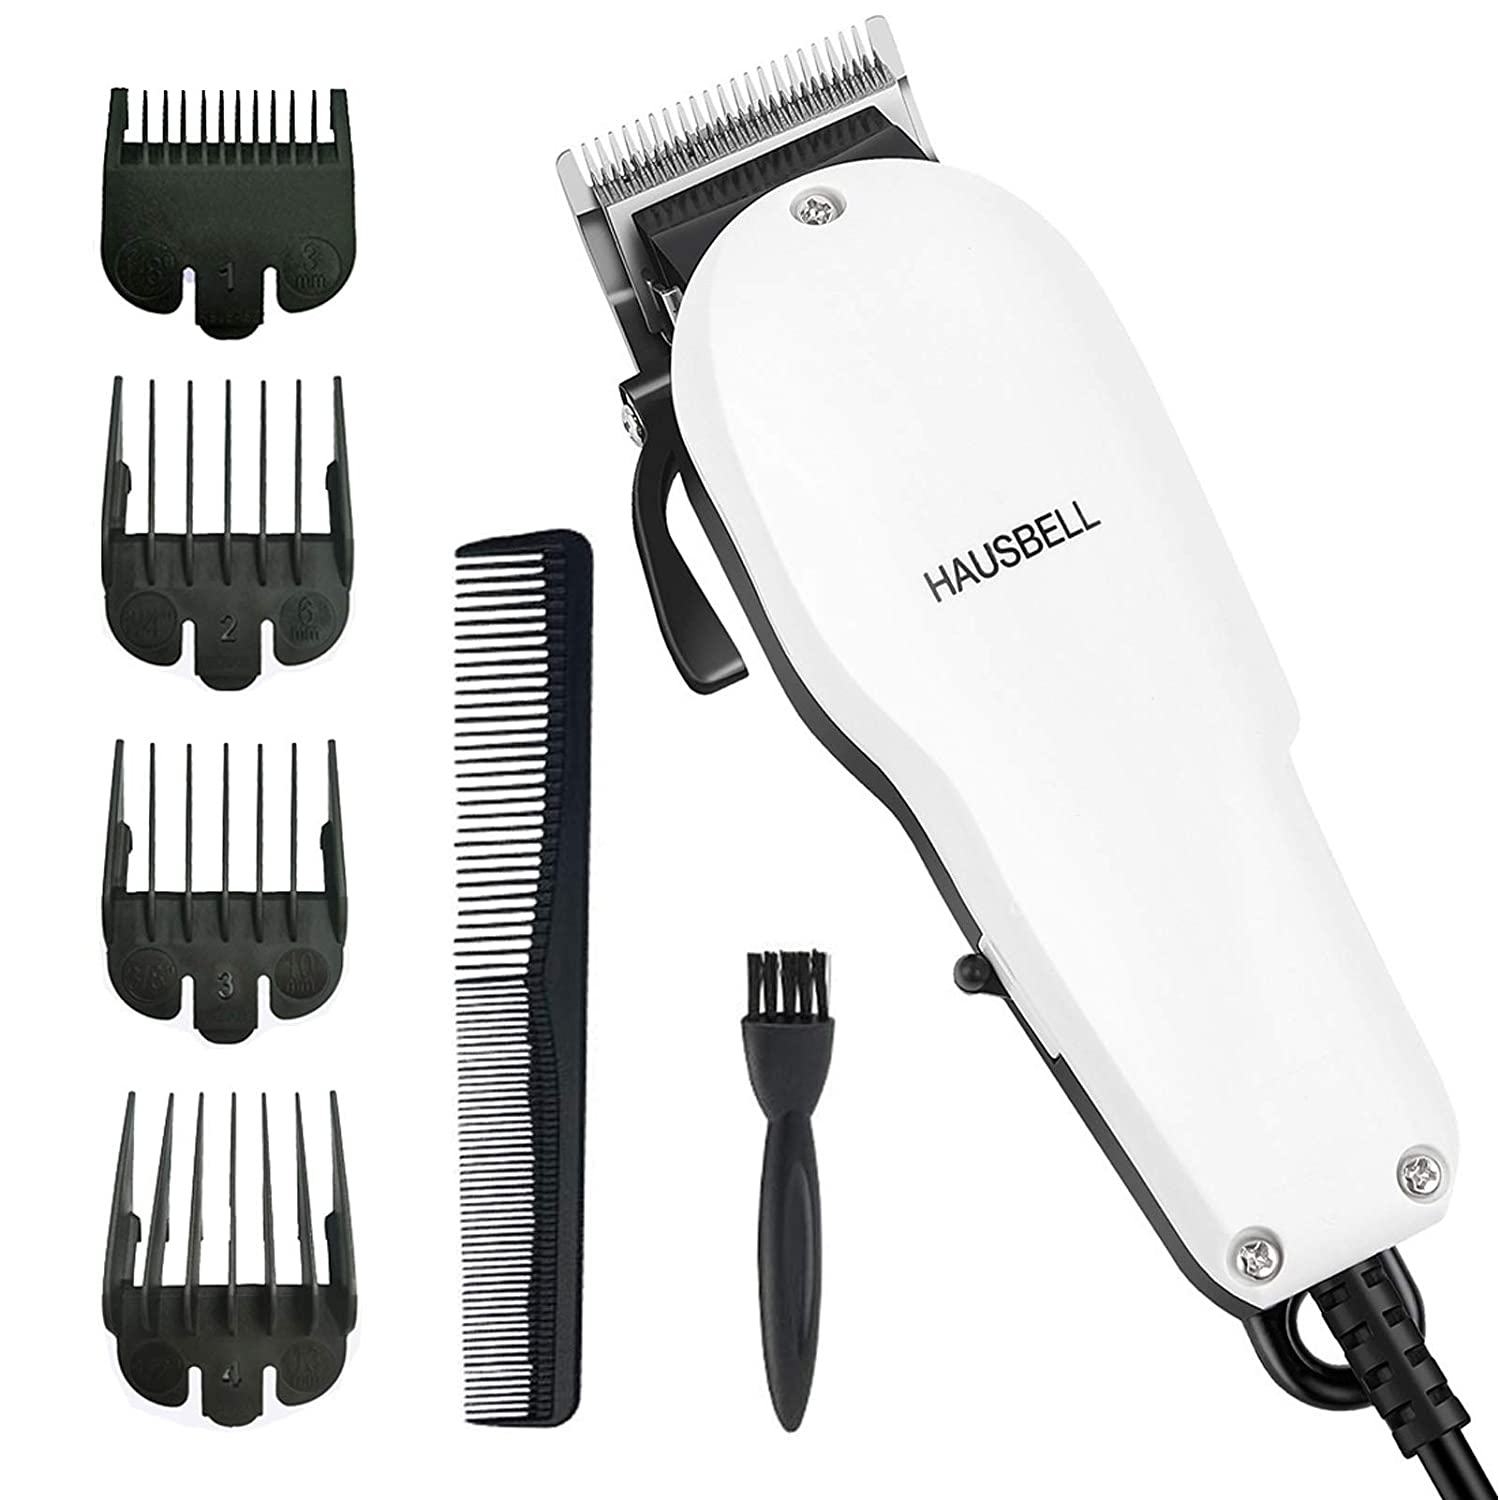 HAUSBELL Hair Clippers, Hair Trimmer, Beard Trimmer for Men, Hair Cutting Kit, Barber Clippers, Grooming Kit for Men, Mustache Trimmers, Clippers Shaver with Long Cord for Head, Face, Beard and Body